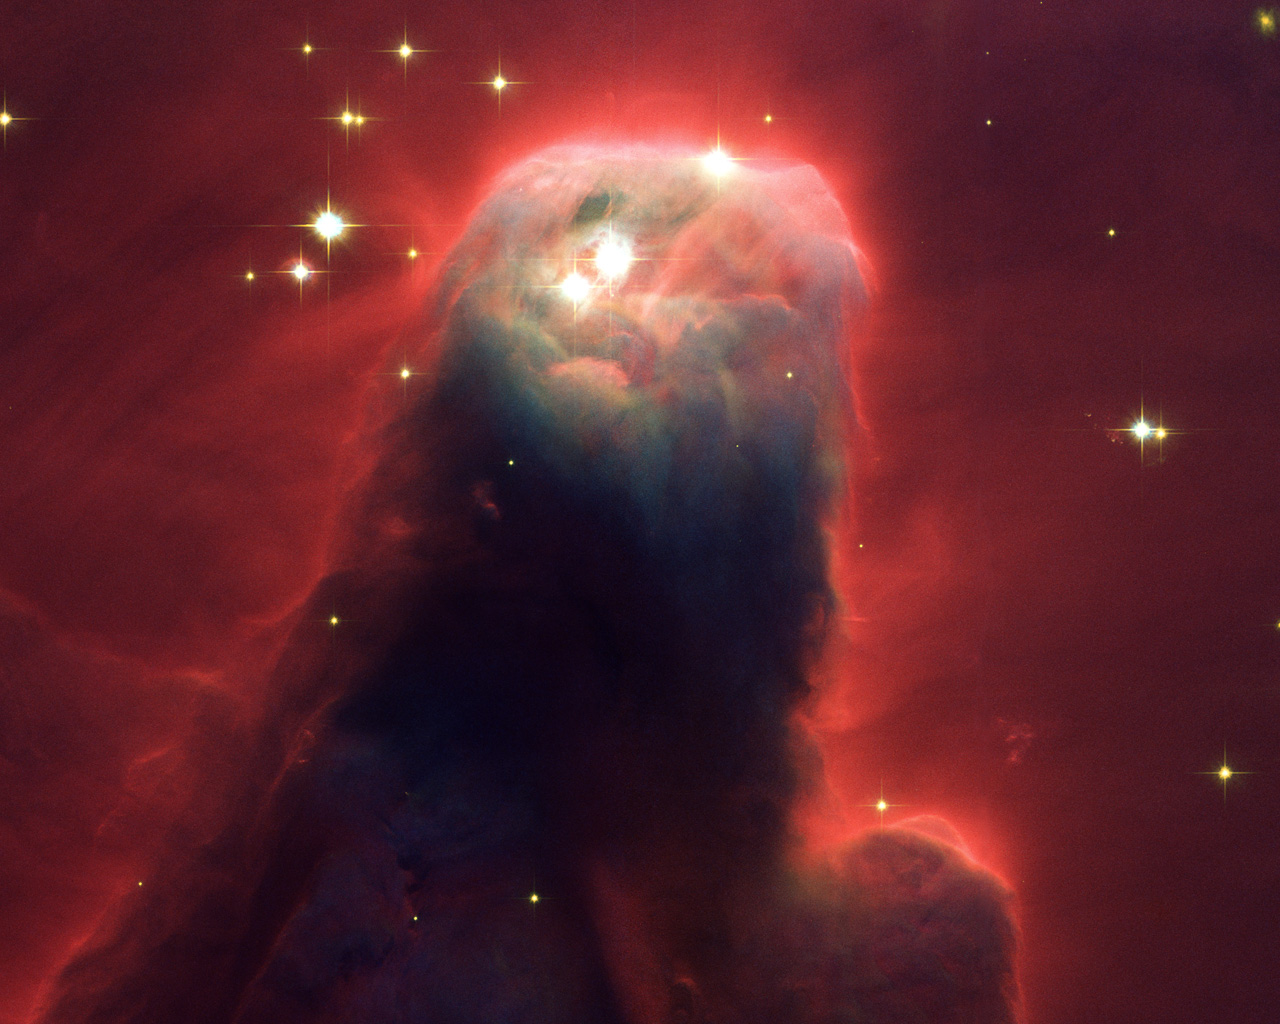 hubble space telescope star 2 - photo #7